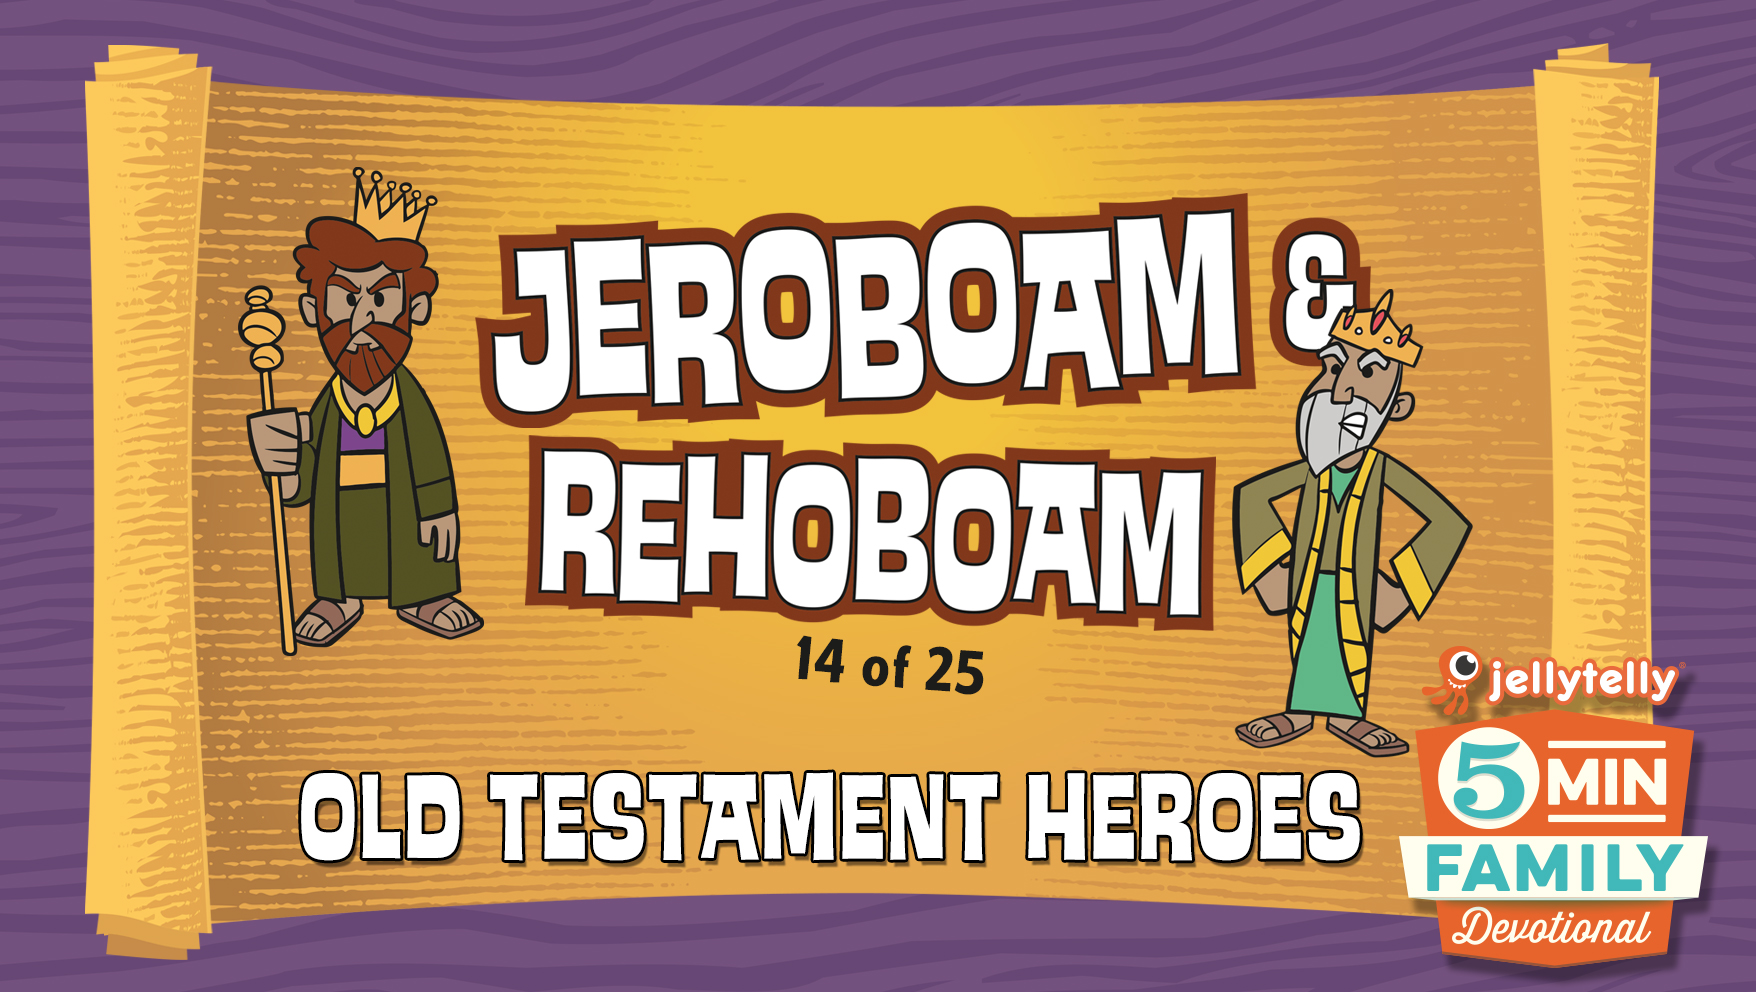 Jeroboam & Rehoboam: Old Testament Heroes - 5 Minute Family Devotional